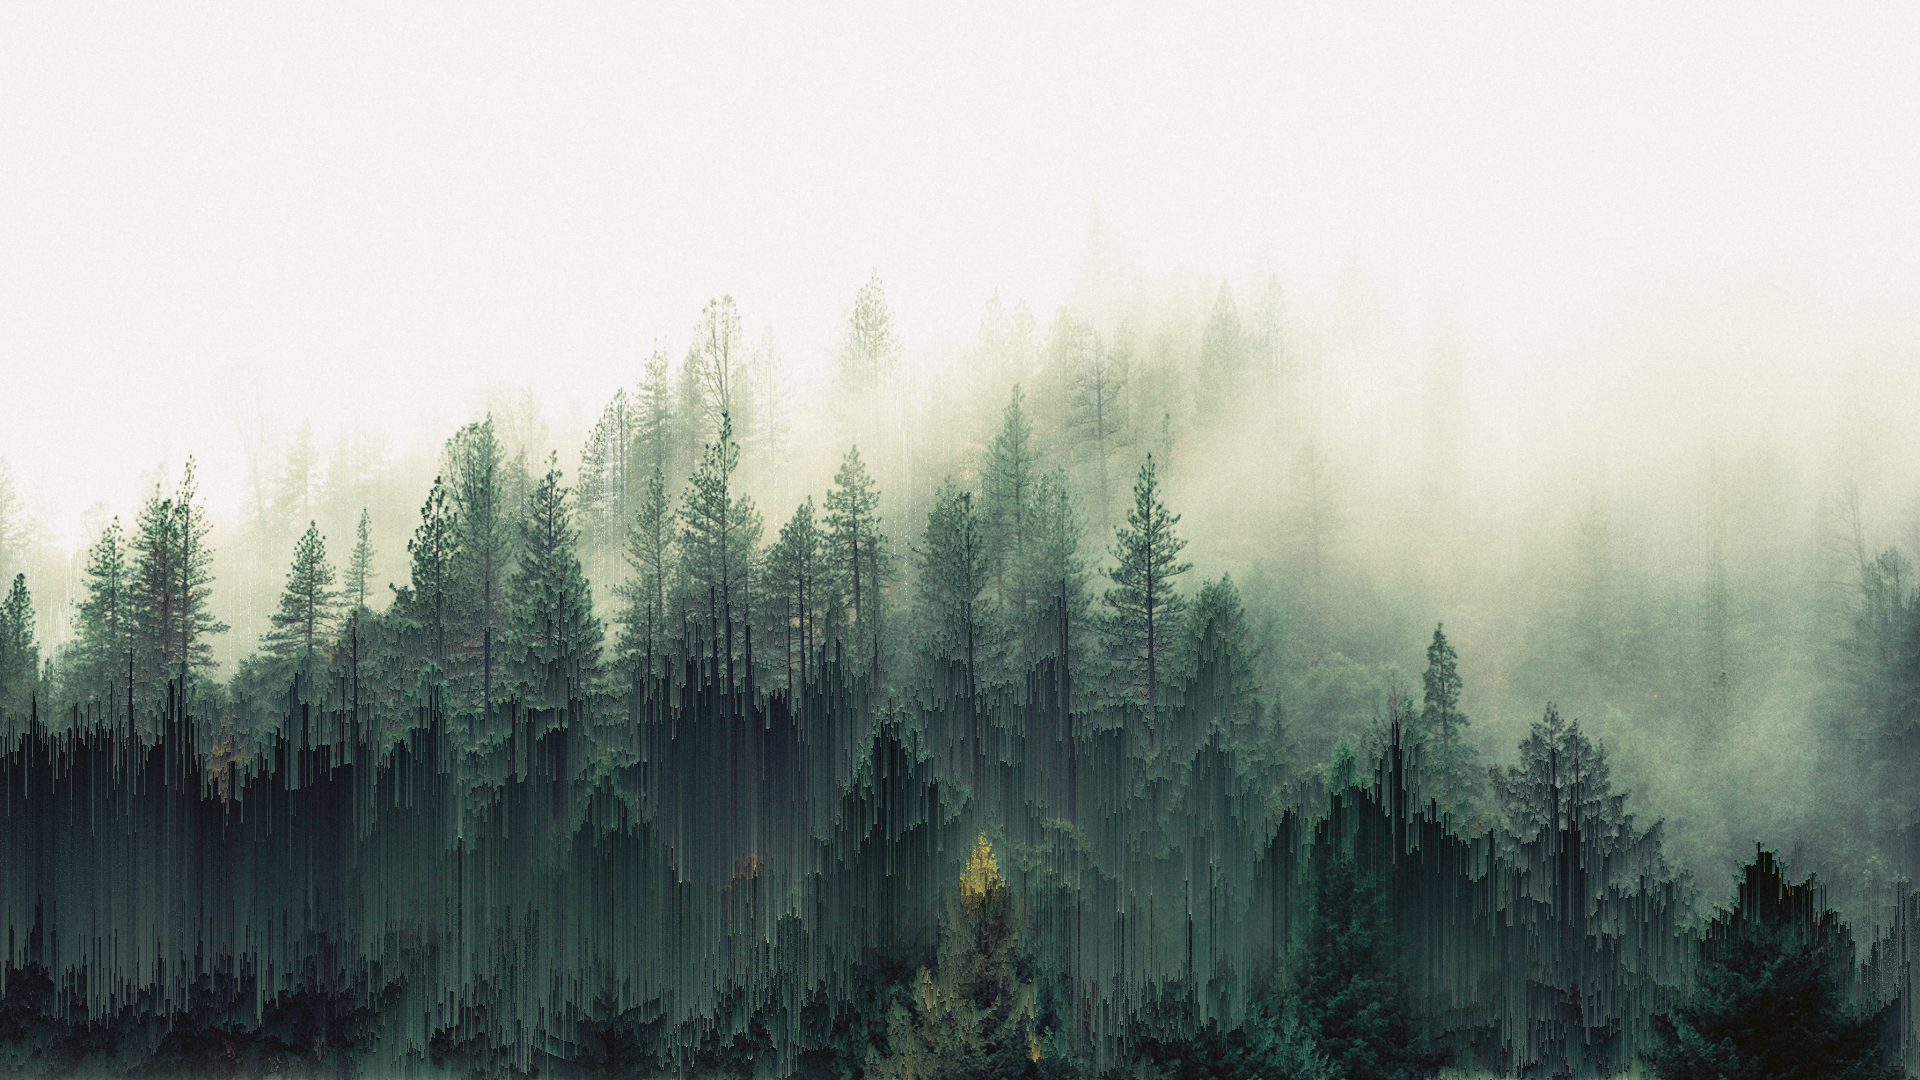 General 1920x1080 Forest Trees Mist Pixel Sorting Forest Photos Forest Photography Foggy Forest